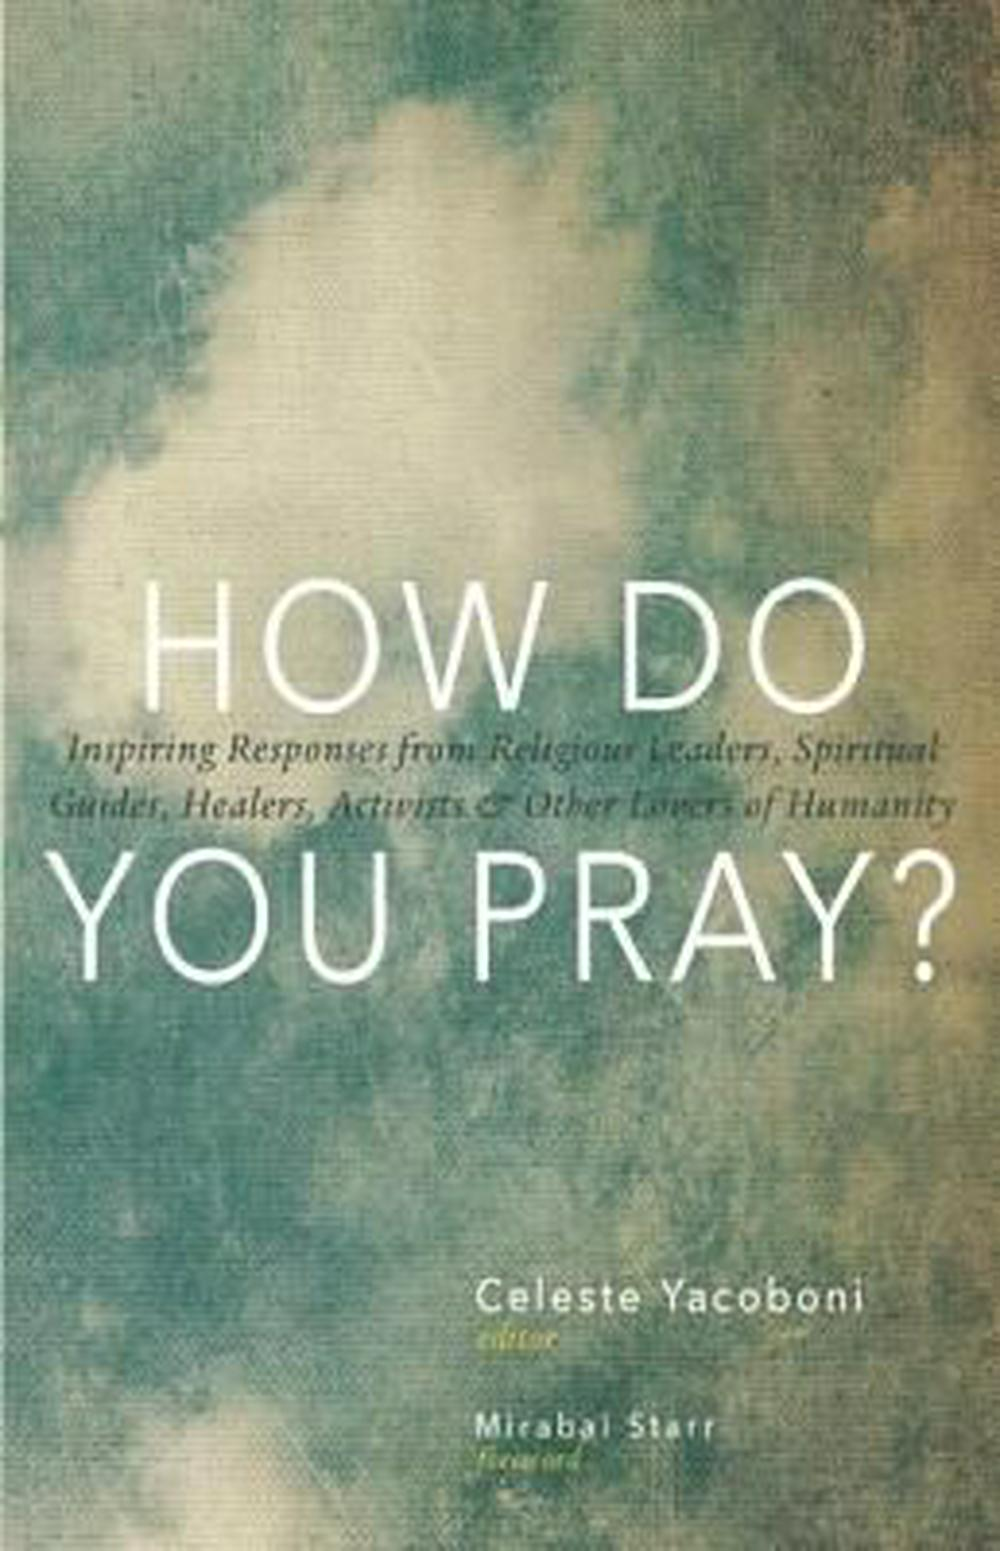 How Do You Pray?: Inspiring Responses from Religious Leaders, Spiritual Guides, Healers, Activists and Other Lovers of Humanity Celebrat